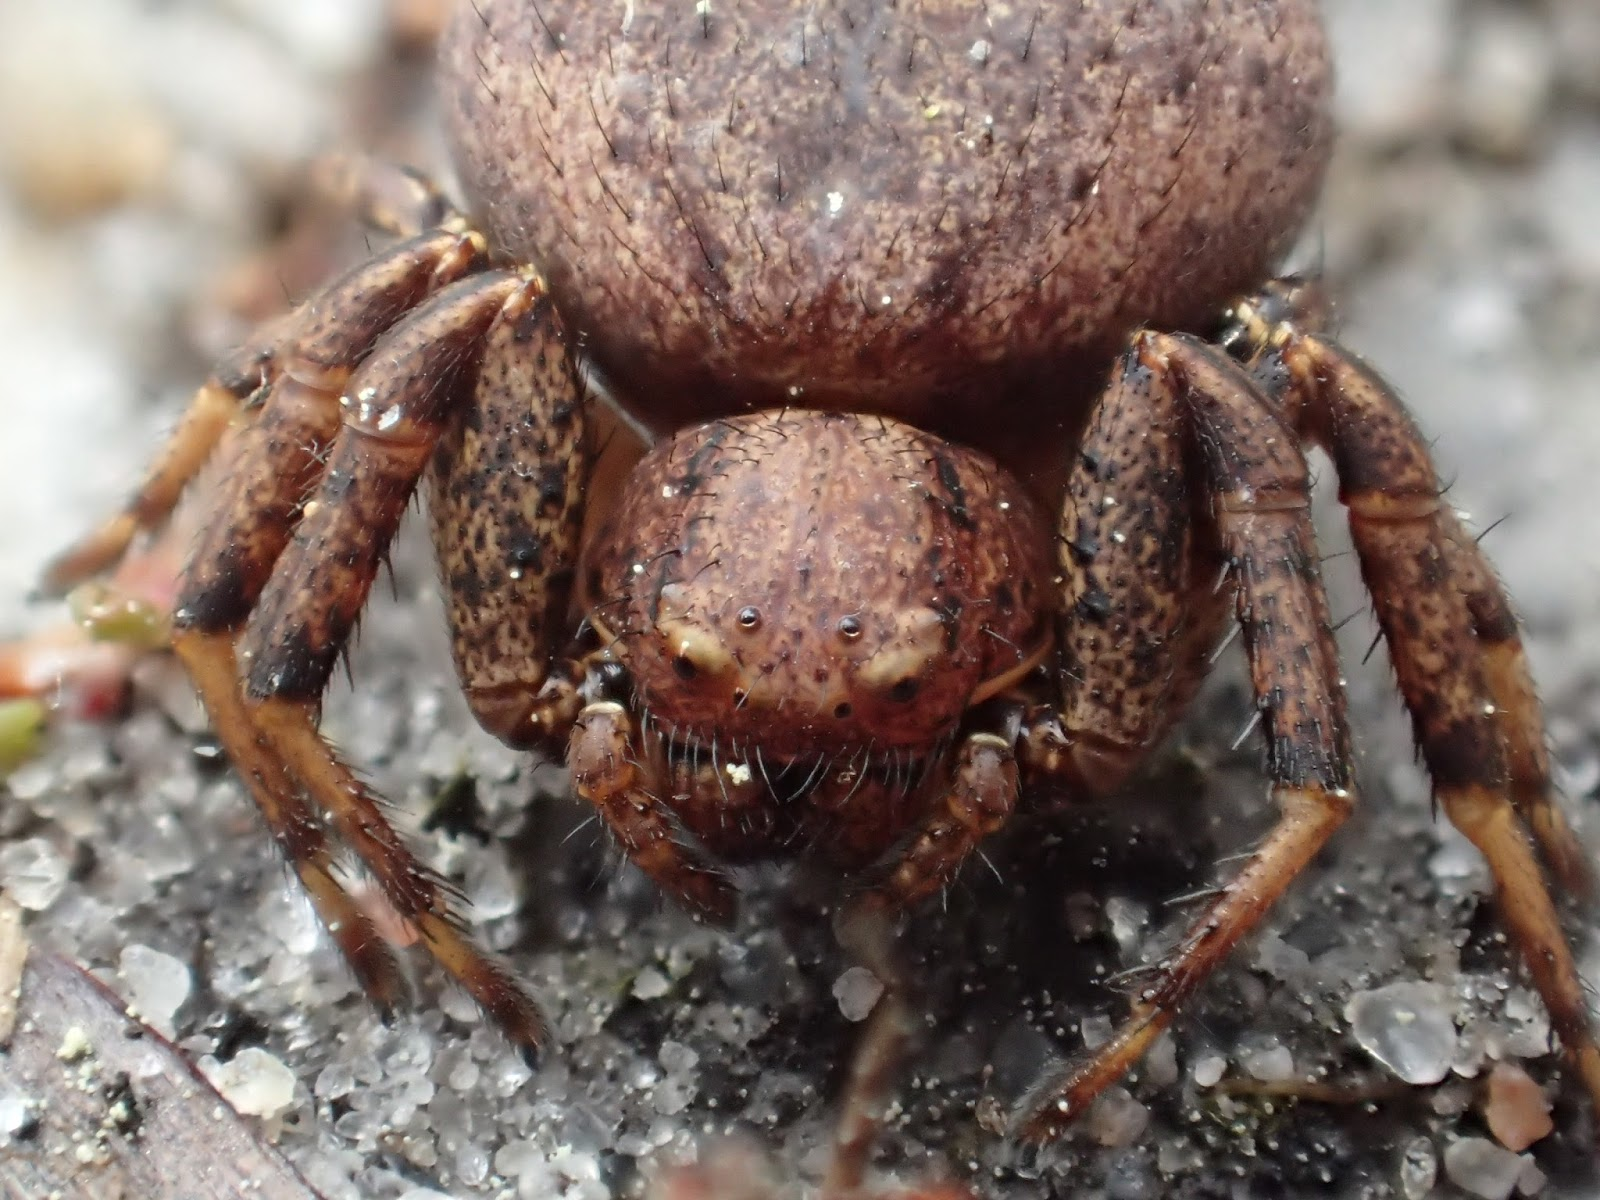 rare spiders of china - HD1600×1200